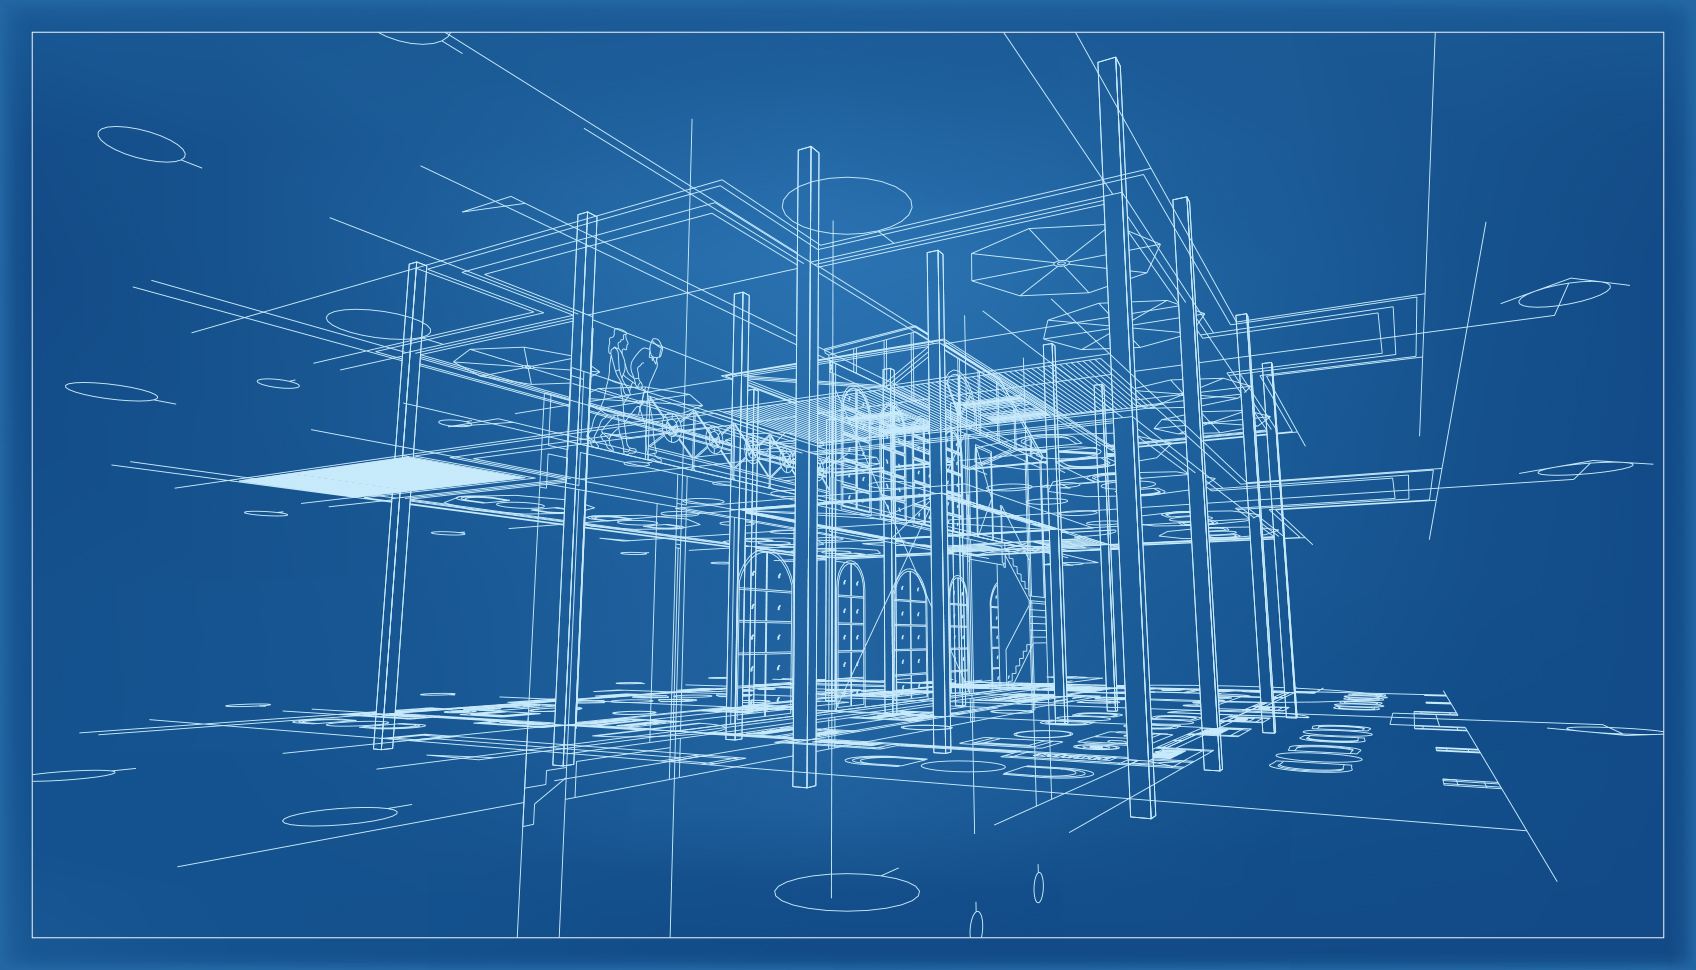 Blue prints house plans sorell consulting ltd blue prints house plans malvernweather